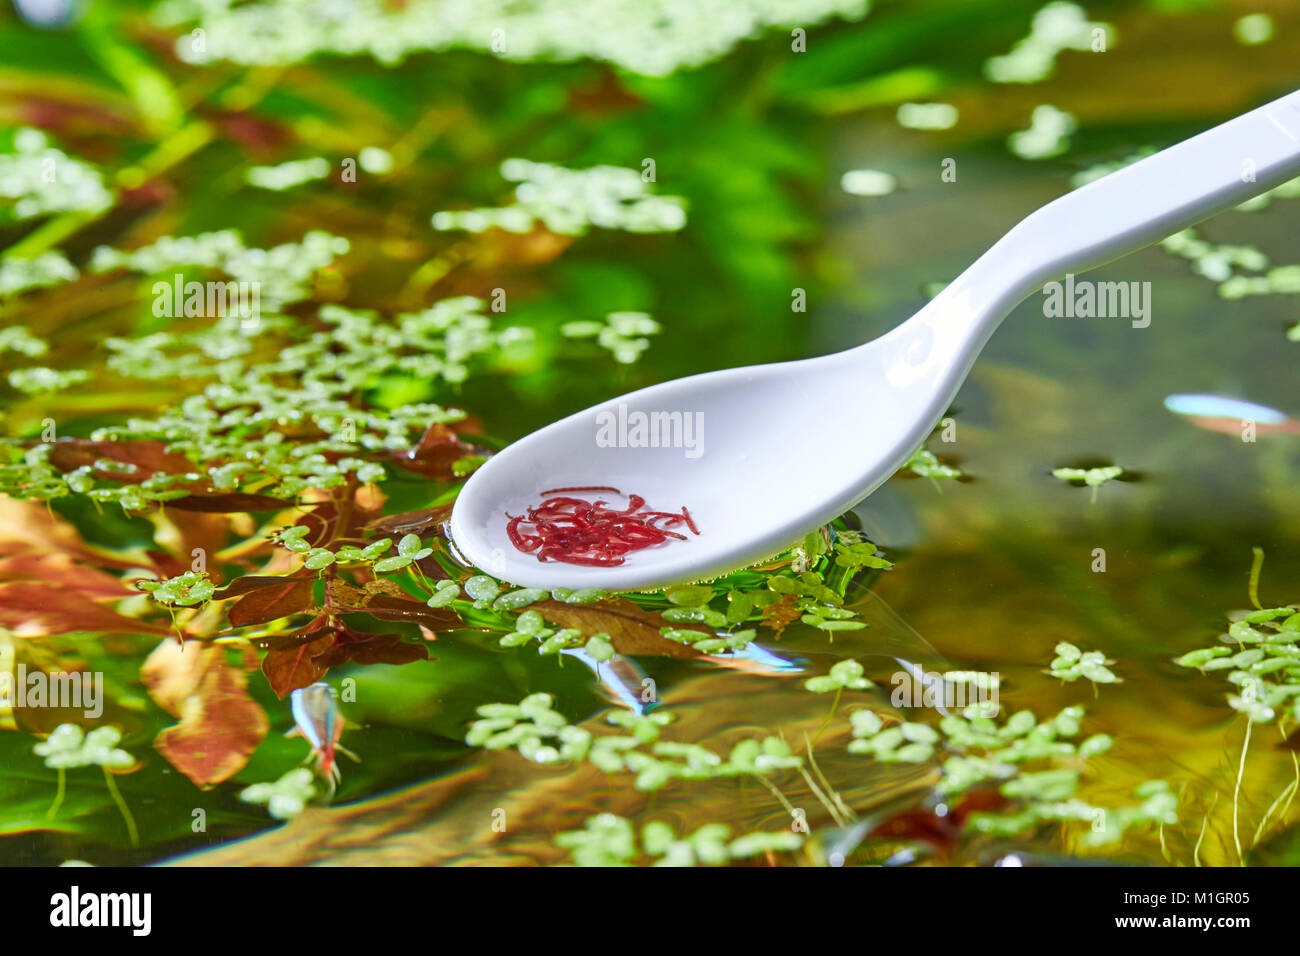 Bloodworms as fish food are given into an freshwater aquarium with the help of a spoon - Stock Image